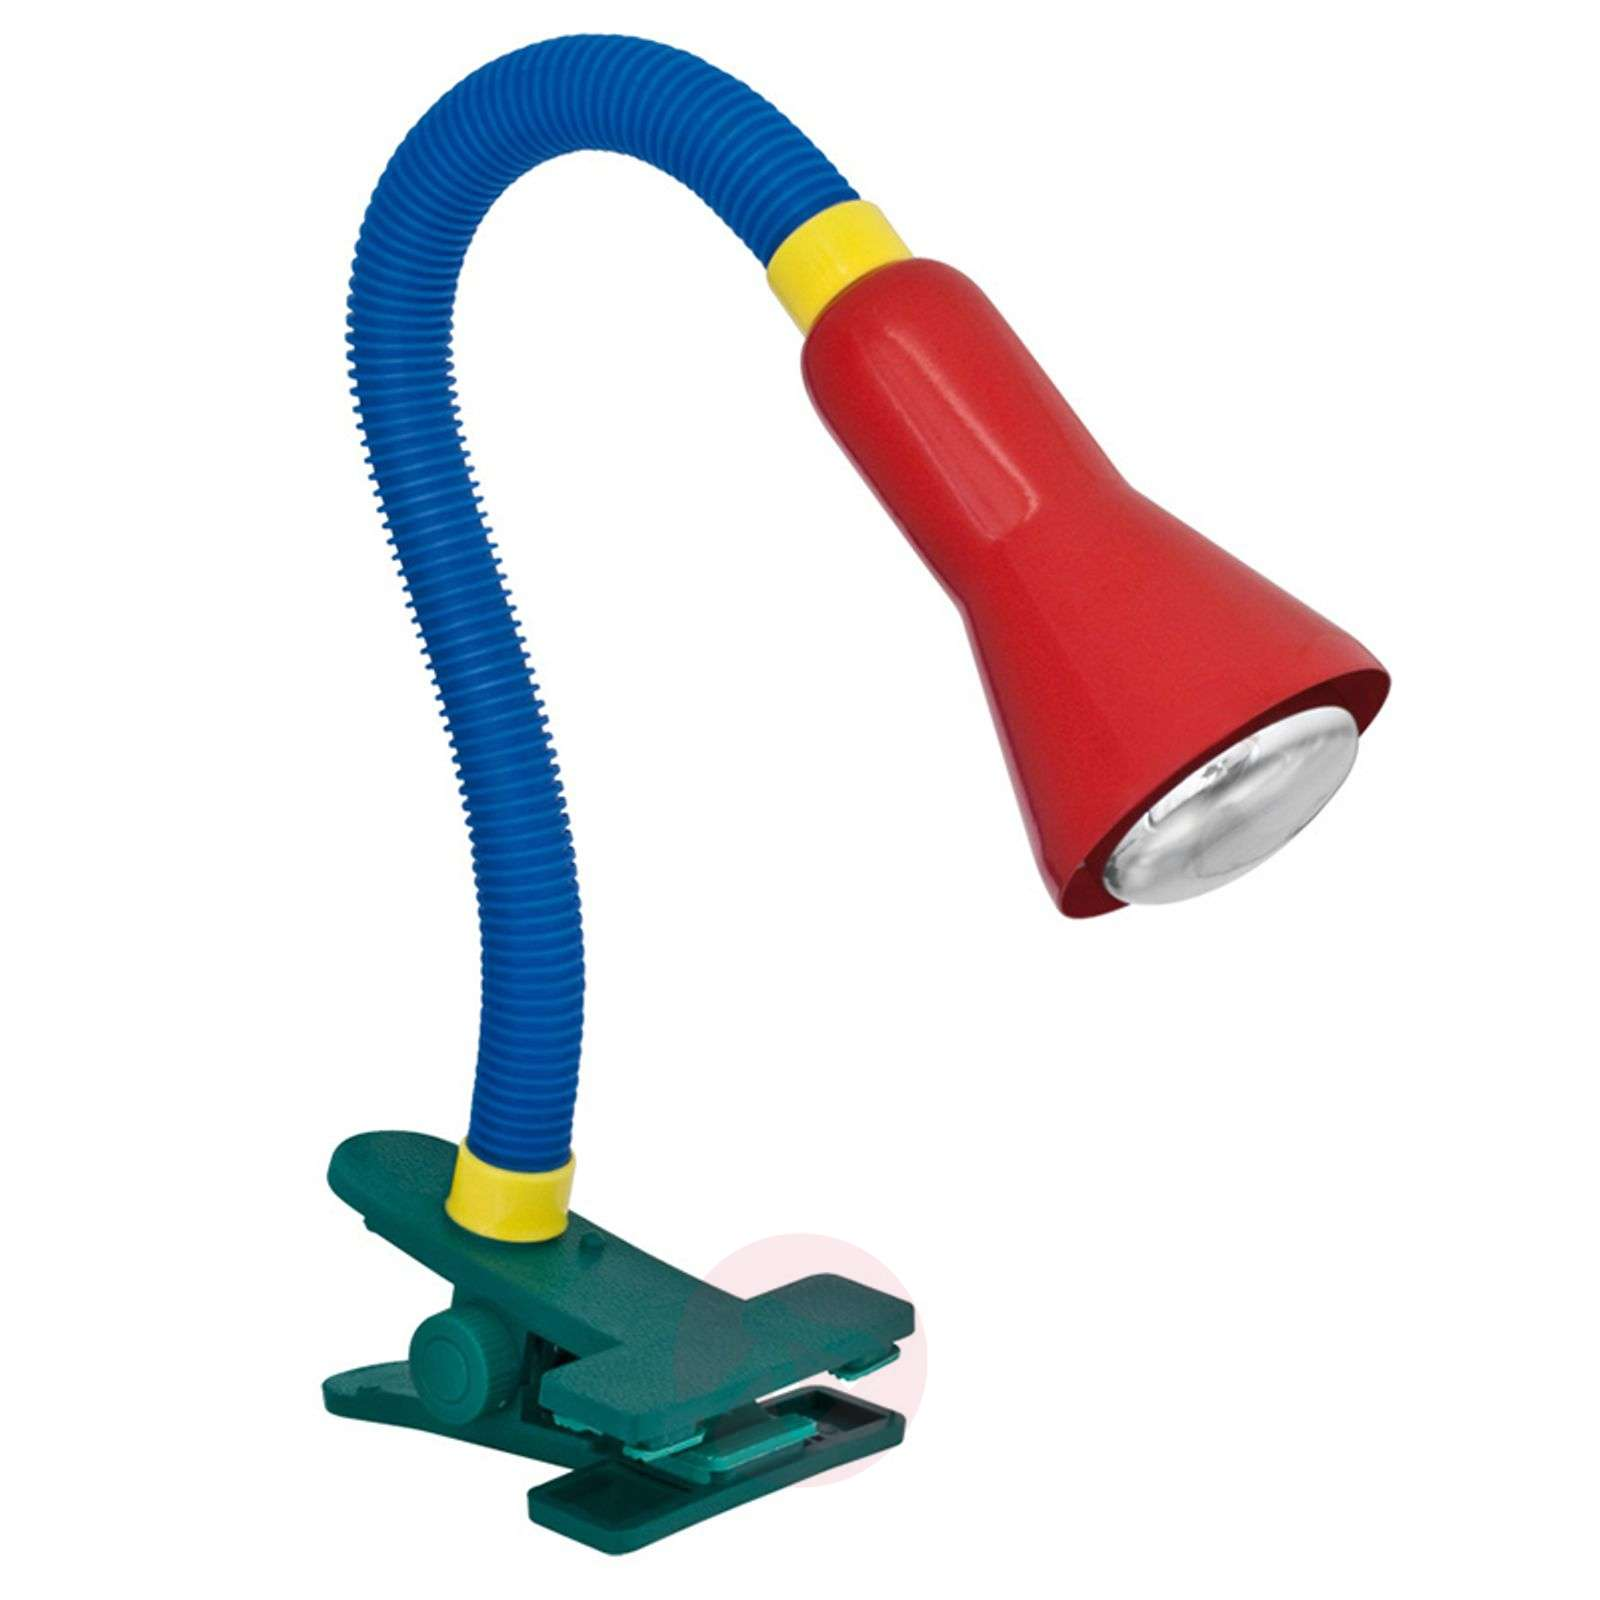 Colourful table lamp COLEUR with clamping foot-9005218-01